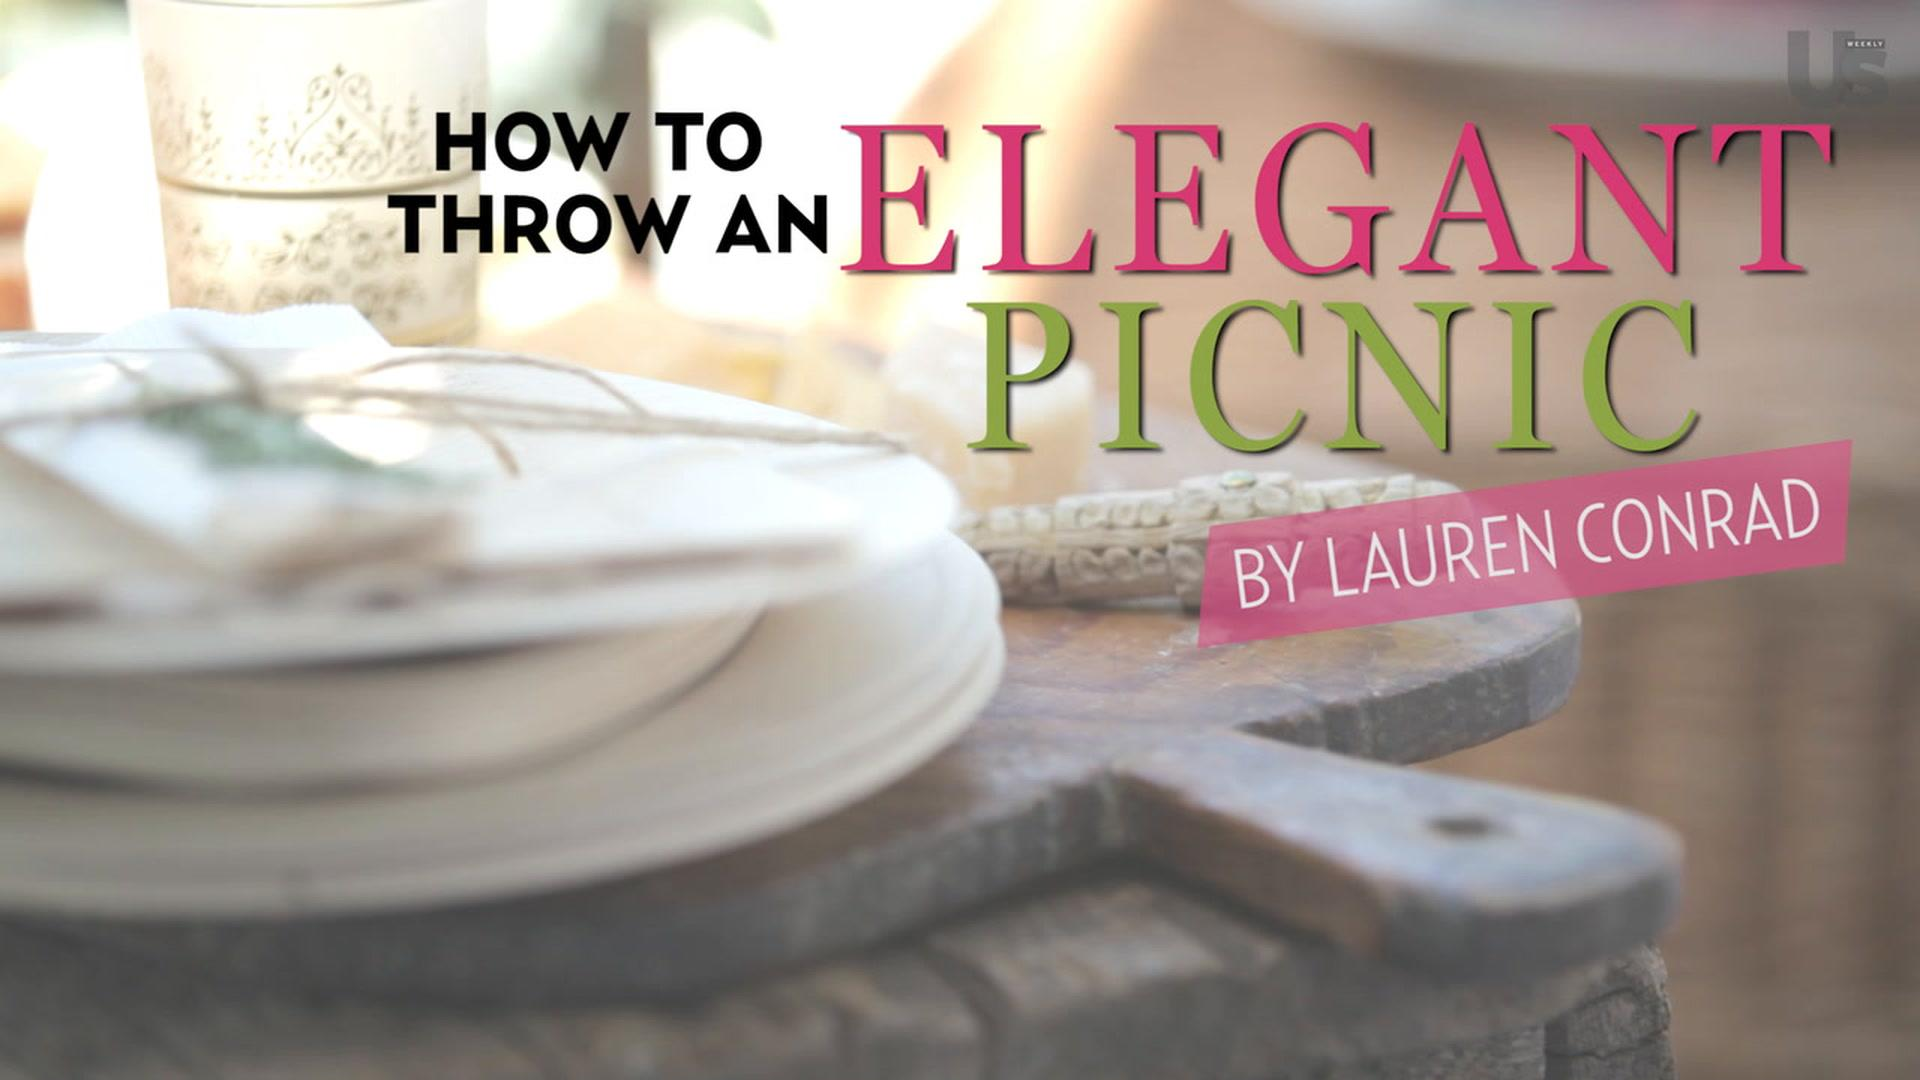 How to Throw an Elegant Picnic With Lauren Conrad